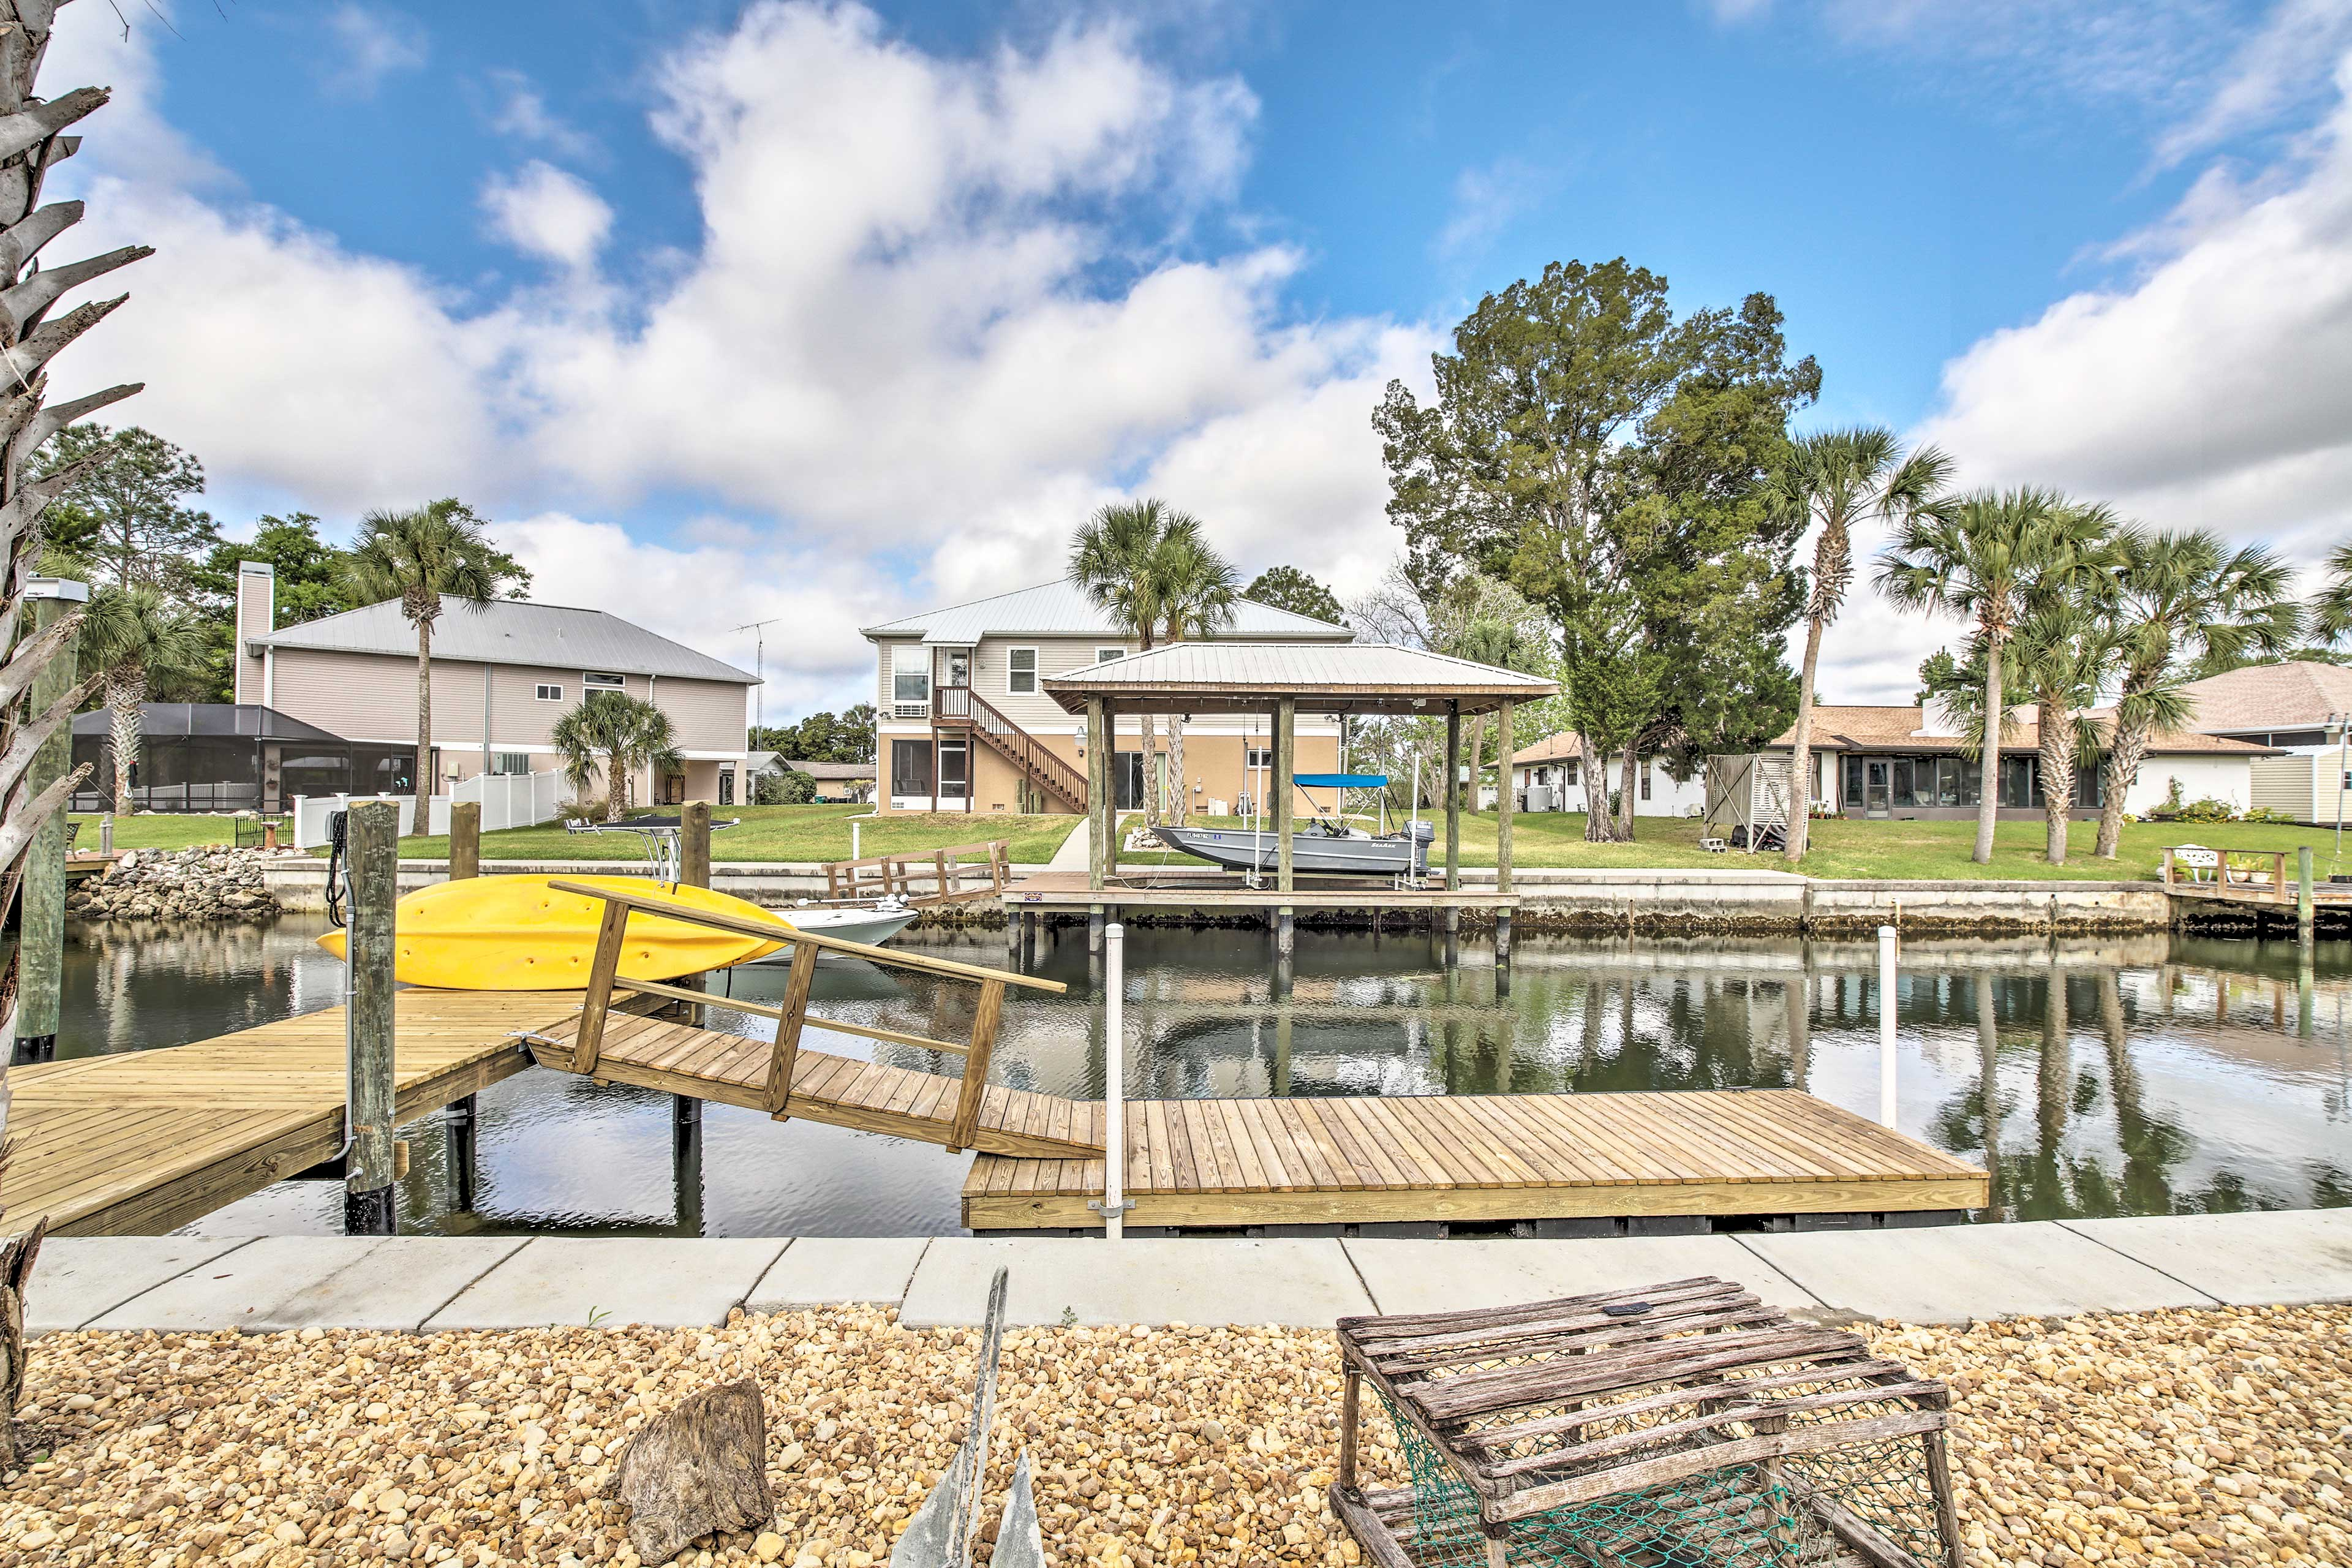 Tie your boat up to this newly build 20-foot dock!